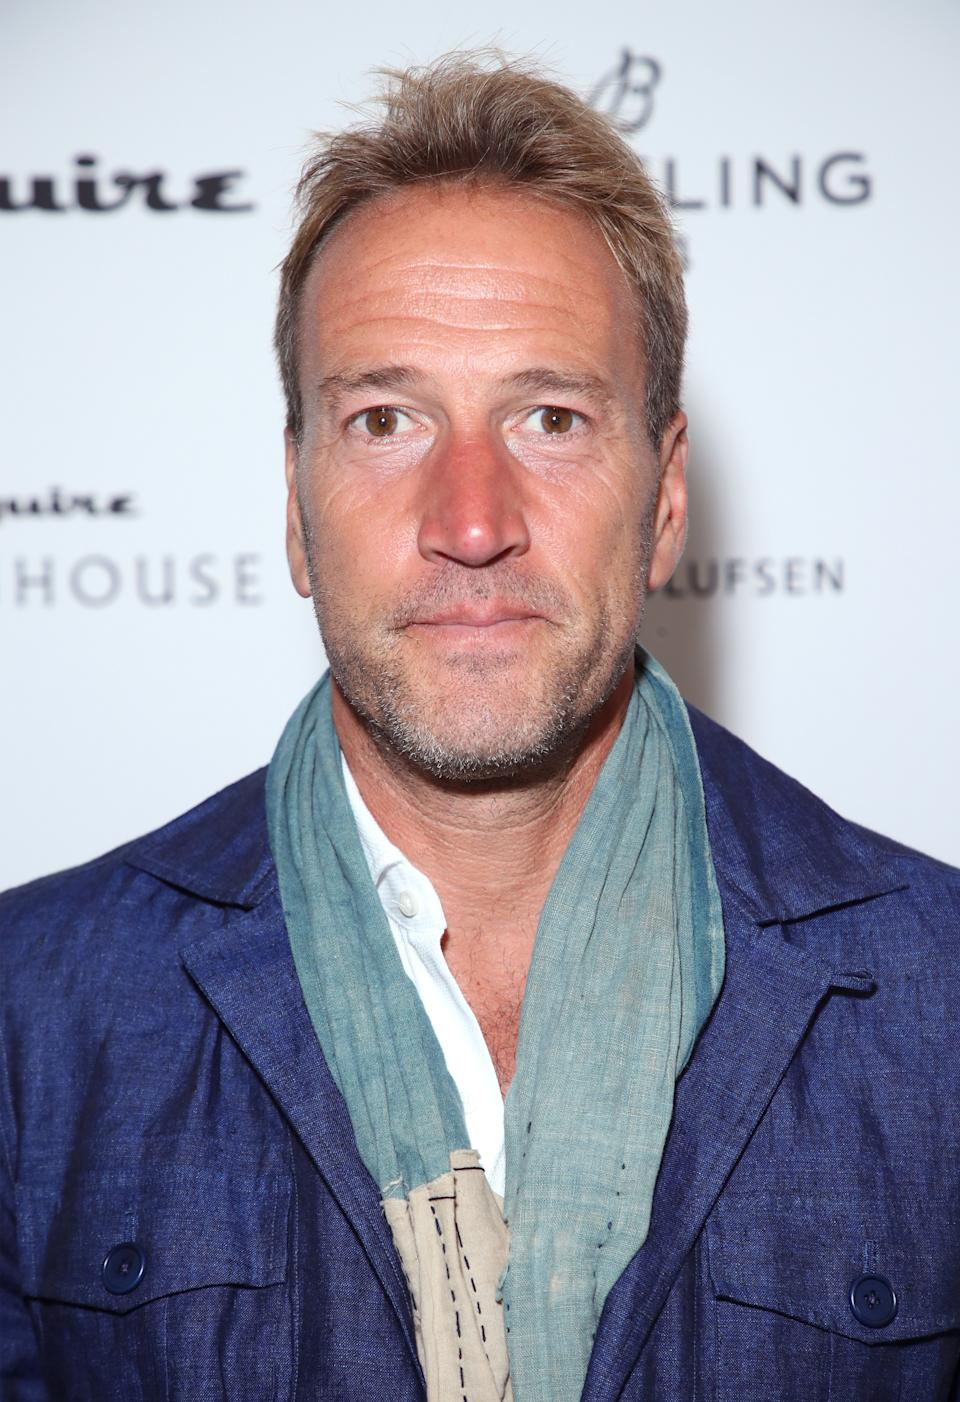 LONDON, ENGLAND - OCTOBER 19: Ben Fogle attends Esquire Townhouse on October 19, 2019 in London, England. (Photo by Mike Marsland/WireImage)